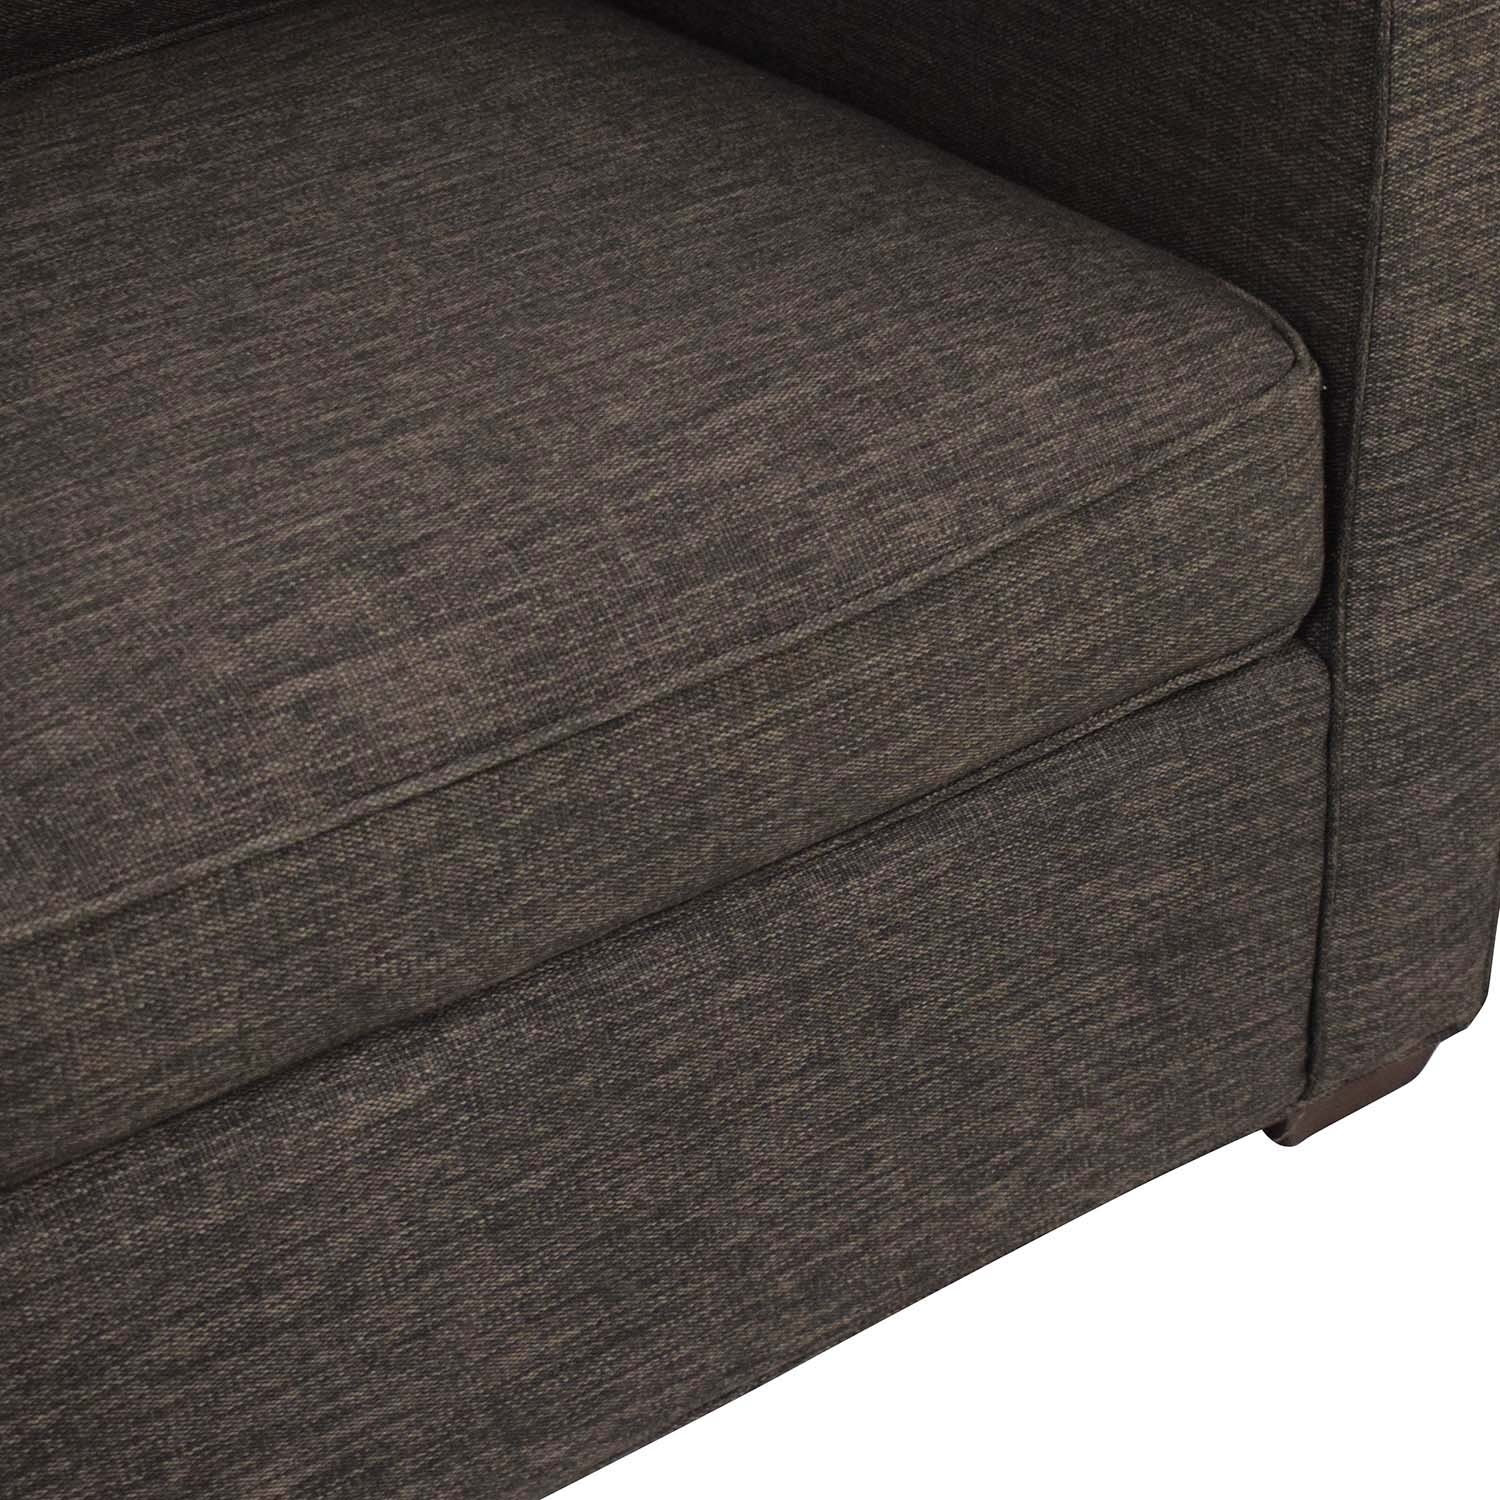 Crate & Barrel Crate & Barrel Reversible Chaise Sofa used